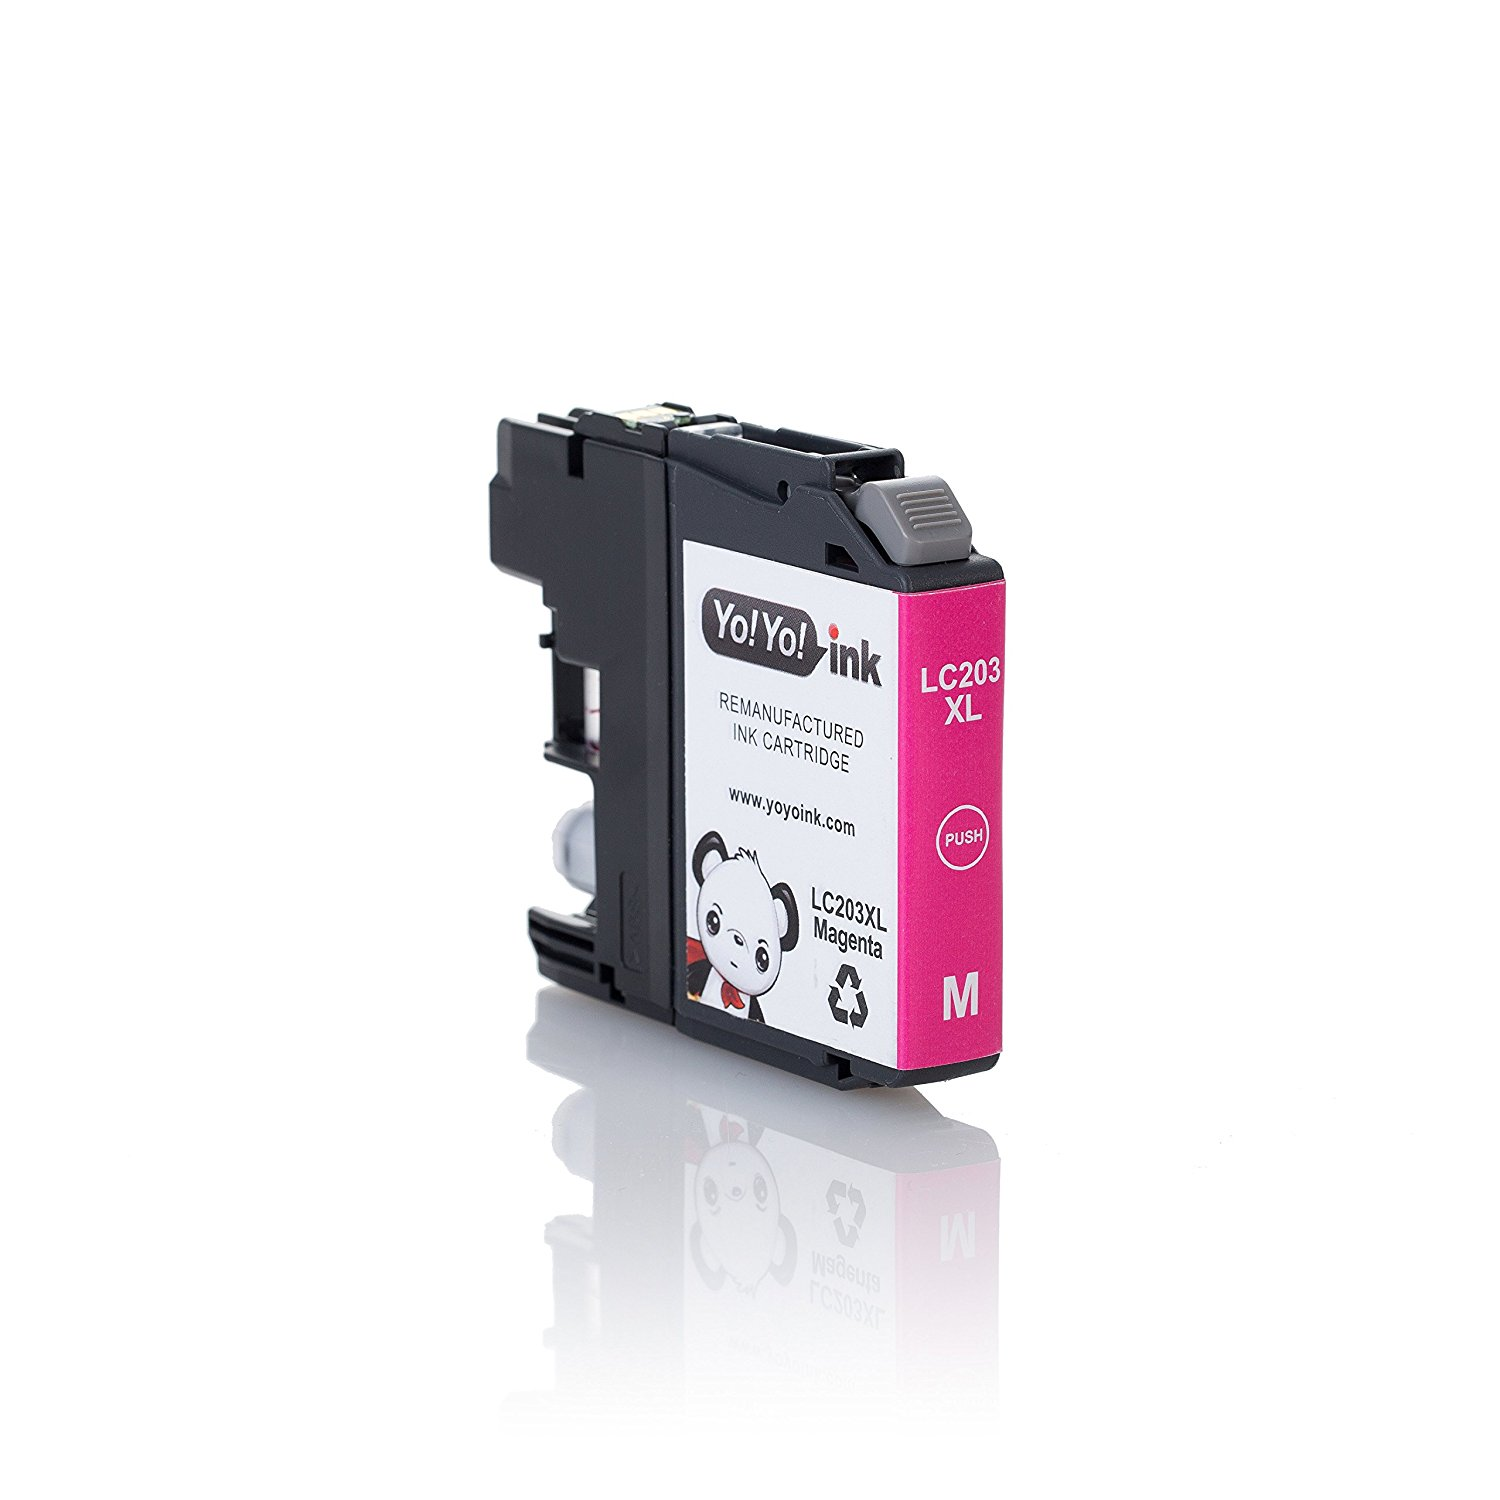 Compatible Brother LC203 XL High Yield Ink Cartridges: 4 Black & 2 each of Cyan / Magenta / Yellow (10 Pack)